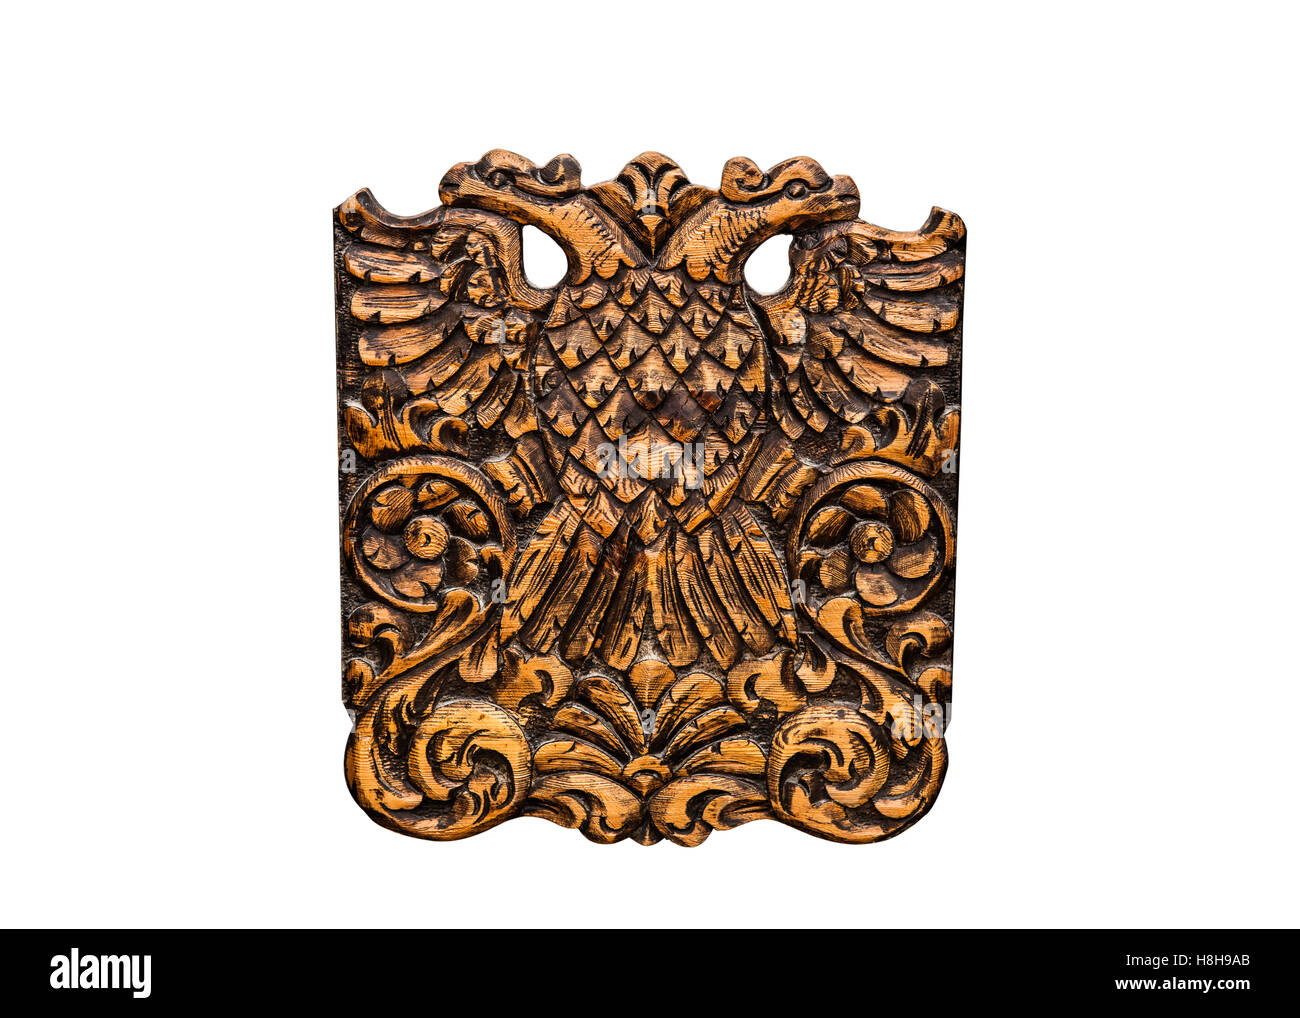 Double Headed Eagle, common symbol in heraldry and vexillology. It is most commonly associated with Byzantine Empire, - Stock Image